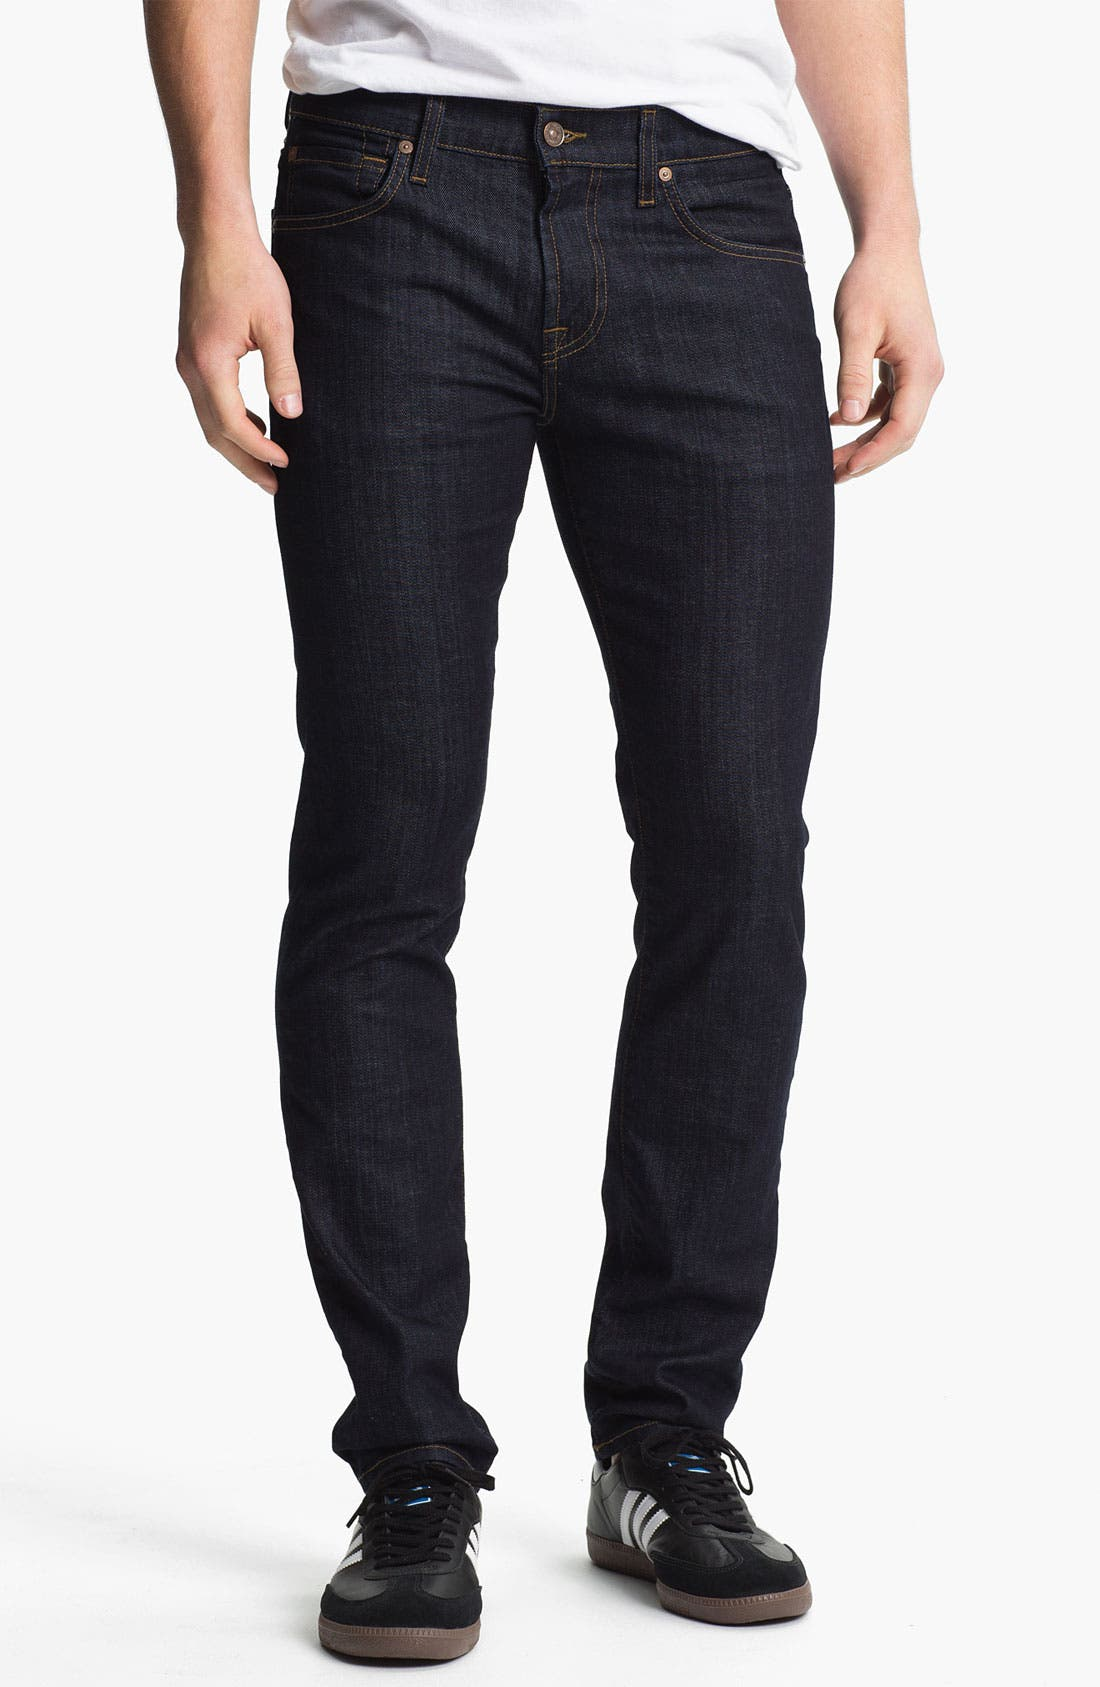 Alternate Image 1 Selected - 7 For All Mankind® 'Paxtyn' Skinny Fit Jeans (Dark & Clean)